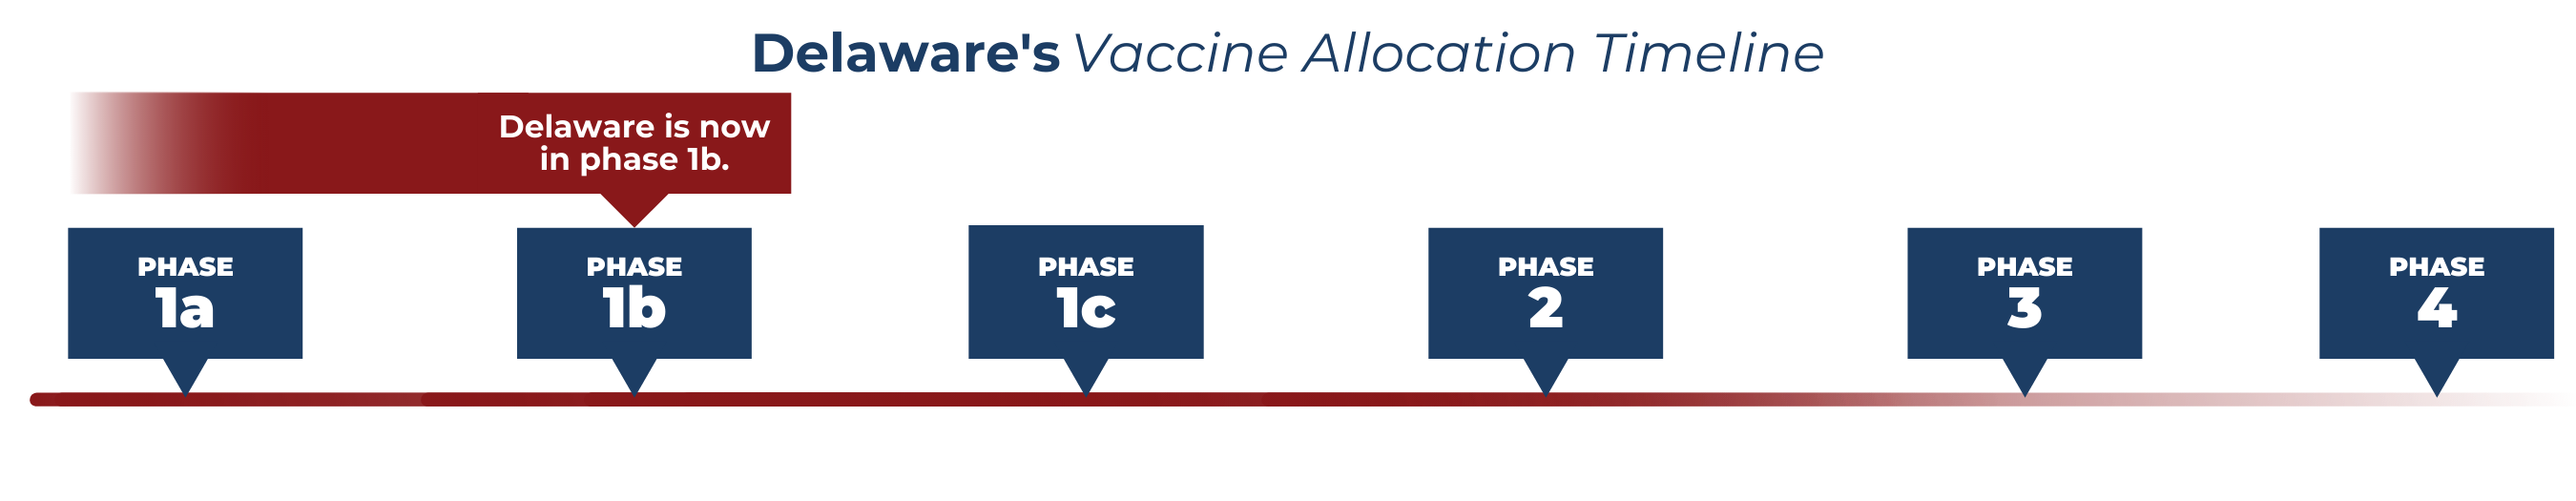 Delaware's Vaccine Allocation Timeline